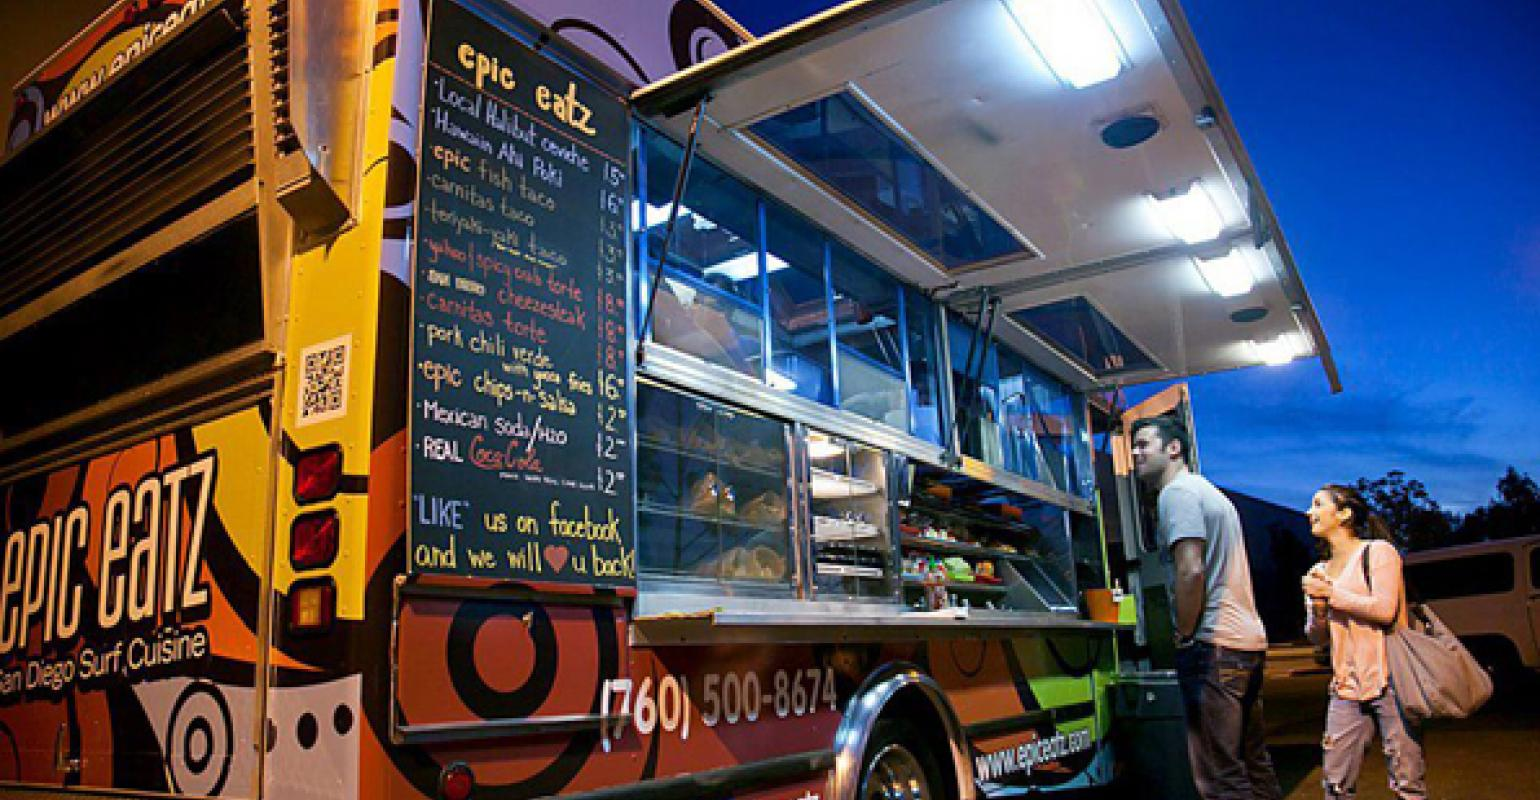 A new website offers food trucks for rent | Restaurant